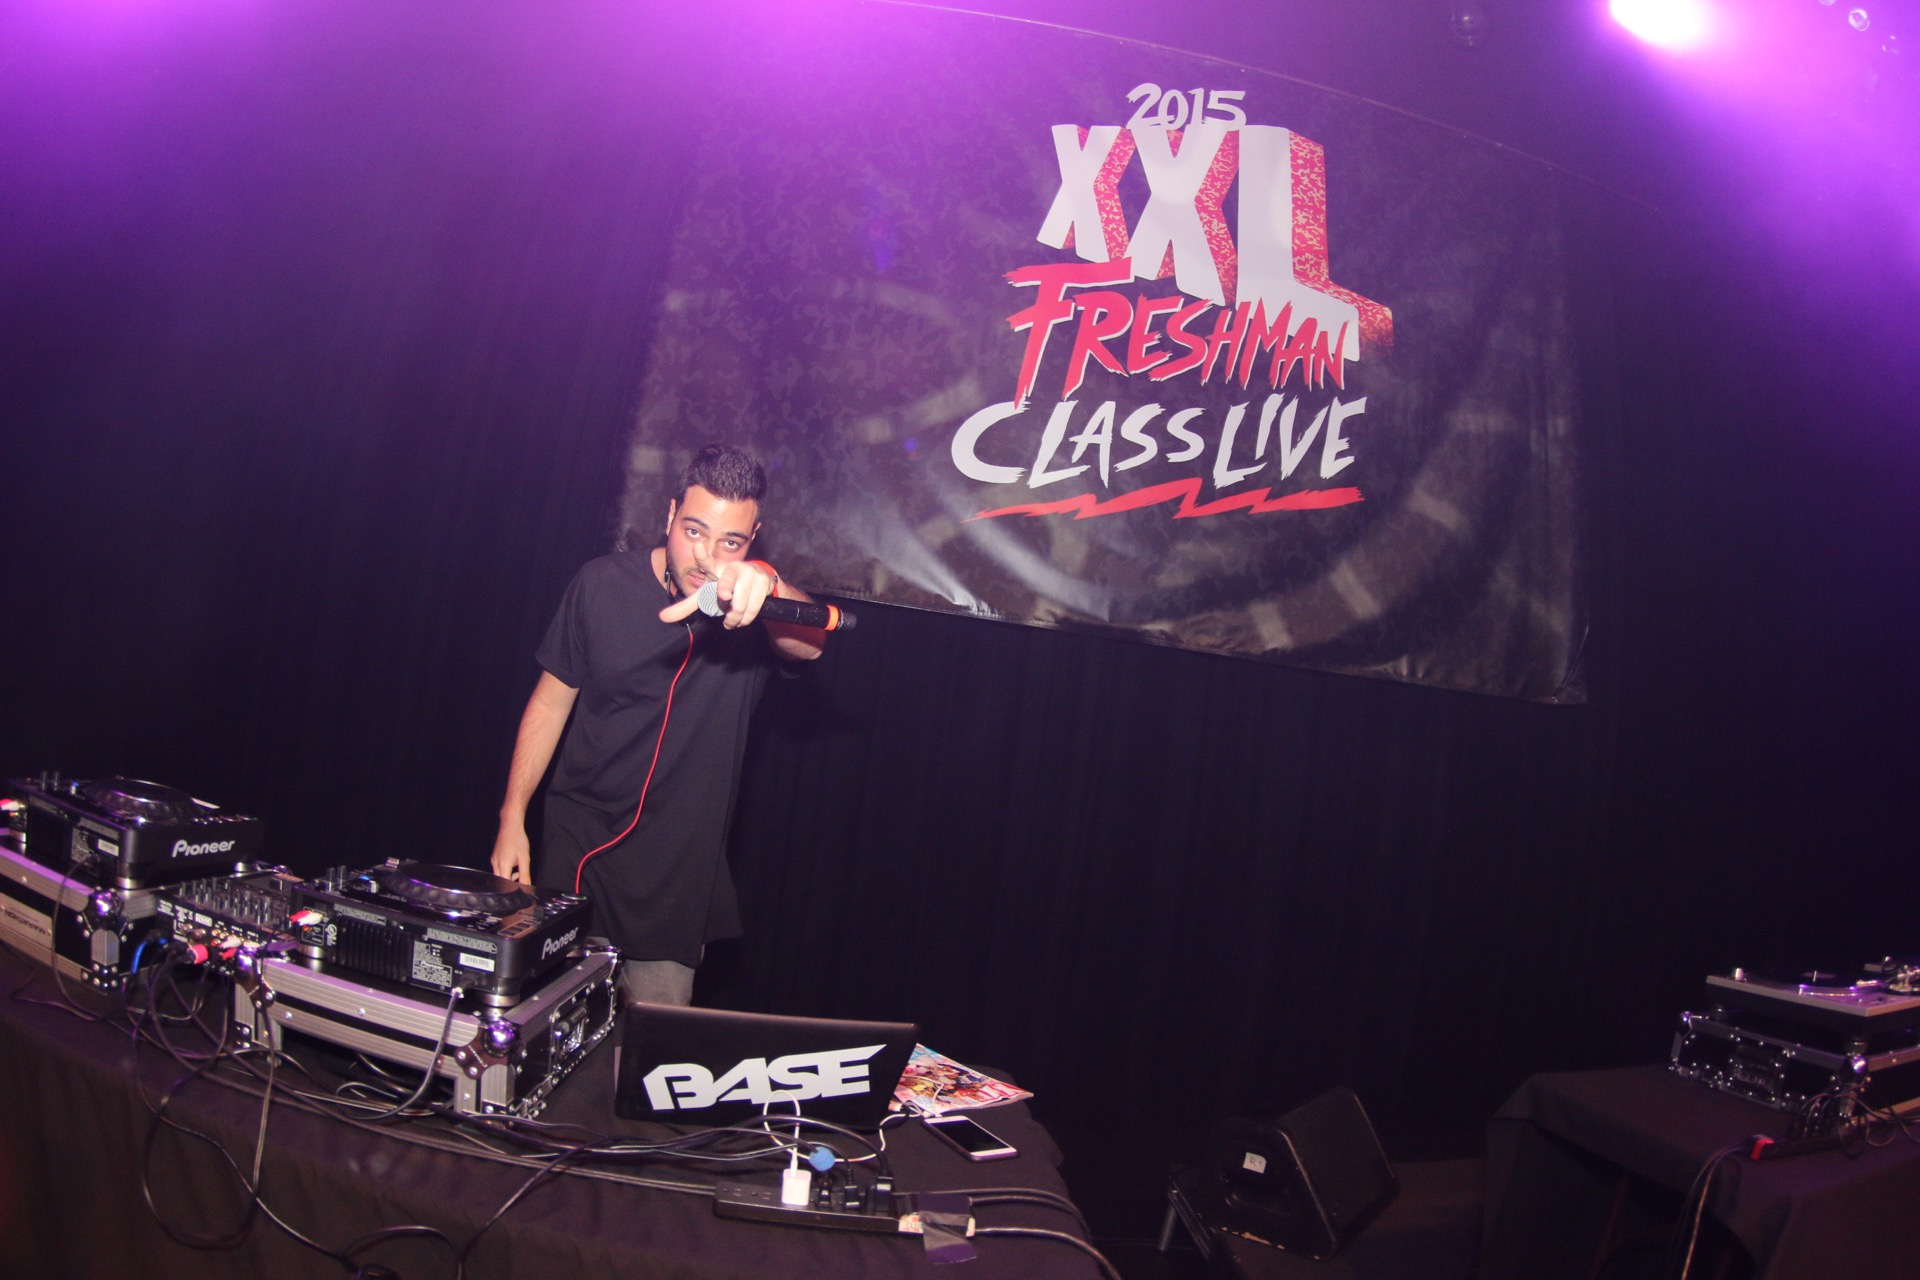 DJ Base| Courtesy of XXL